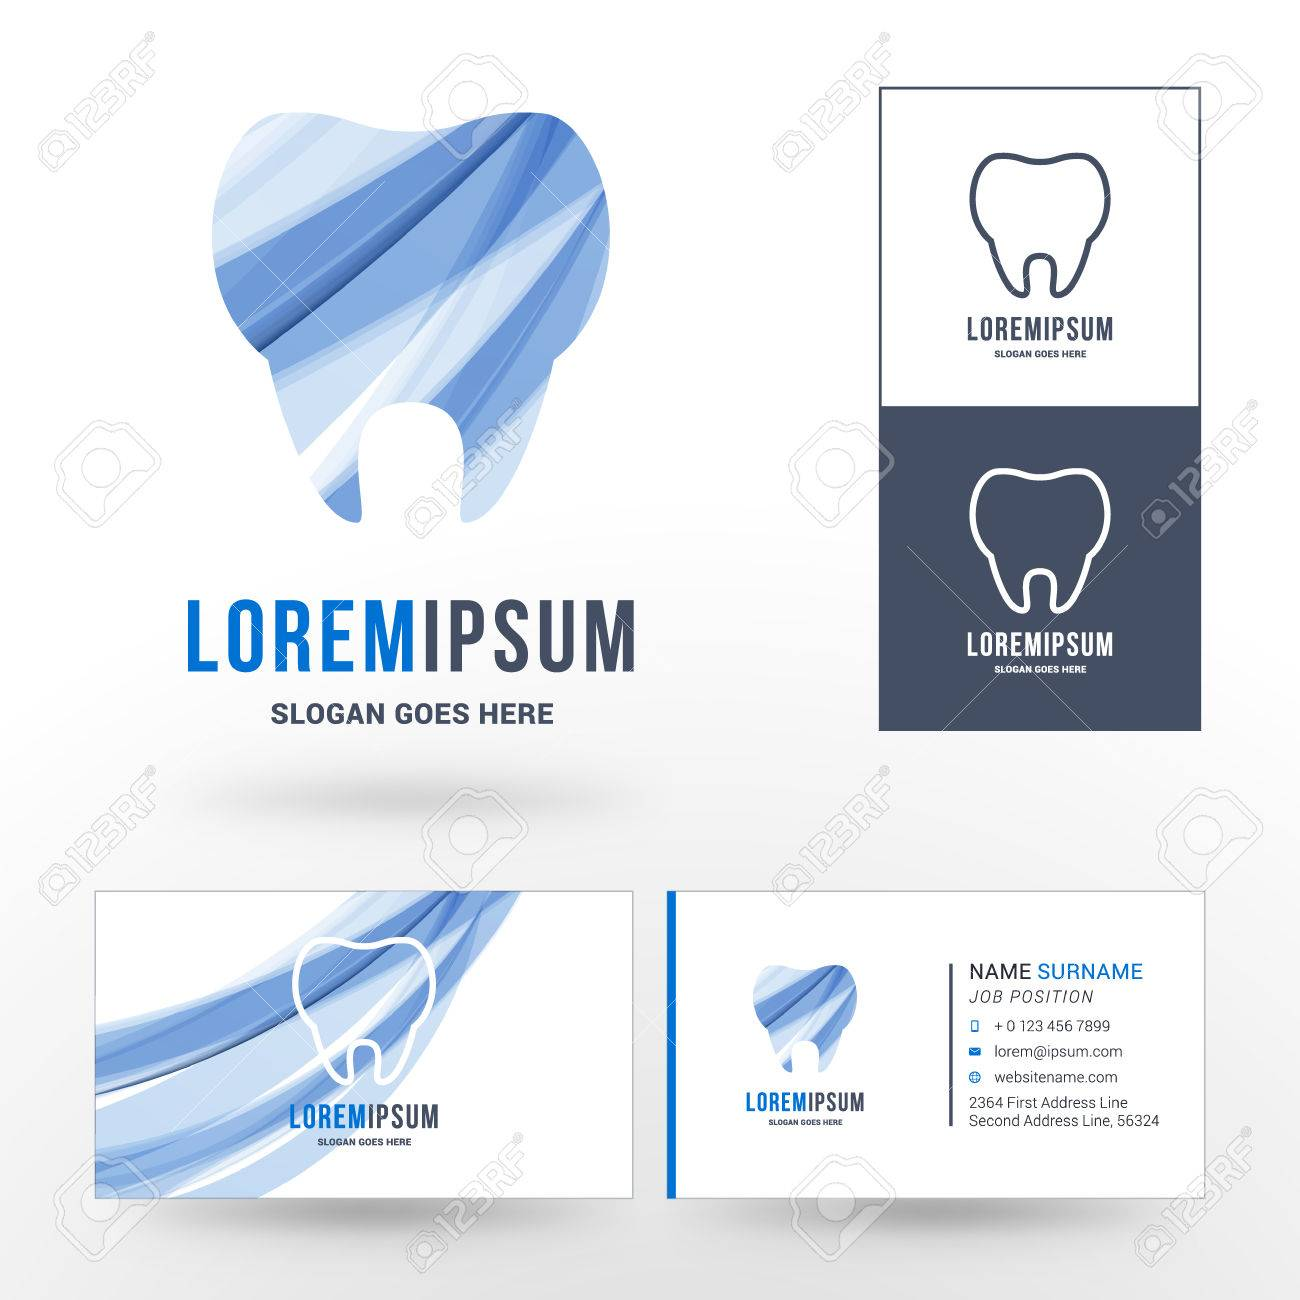 hight resolution of silhouettes of tooth with abstract blue waves logo for dental clinic